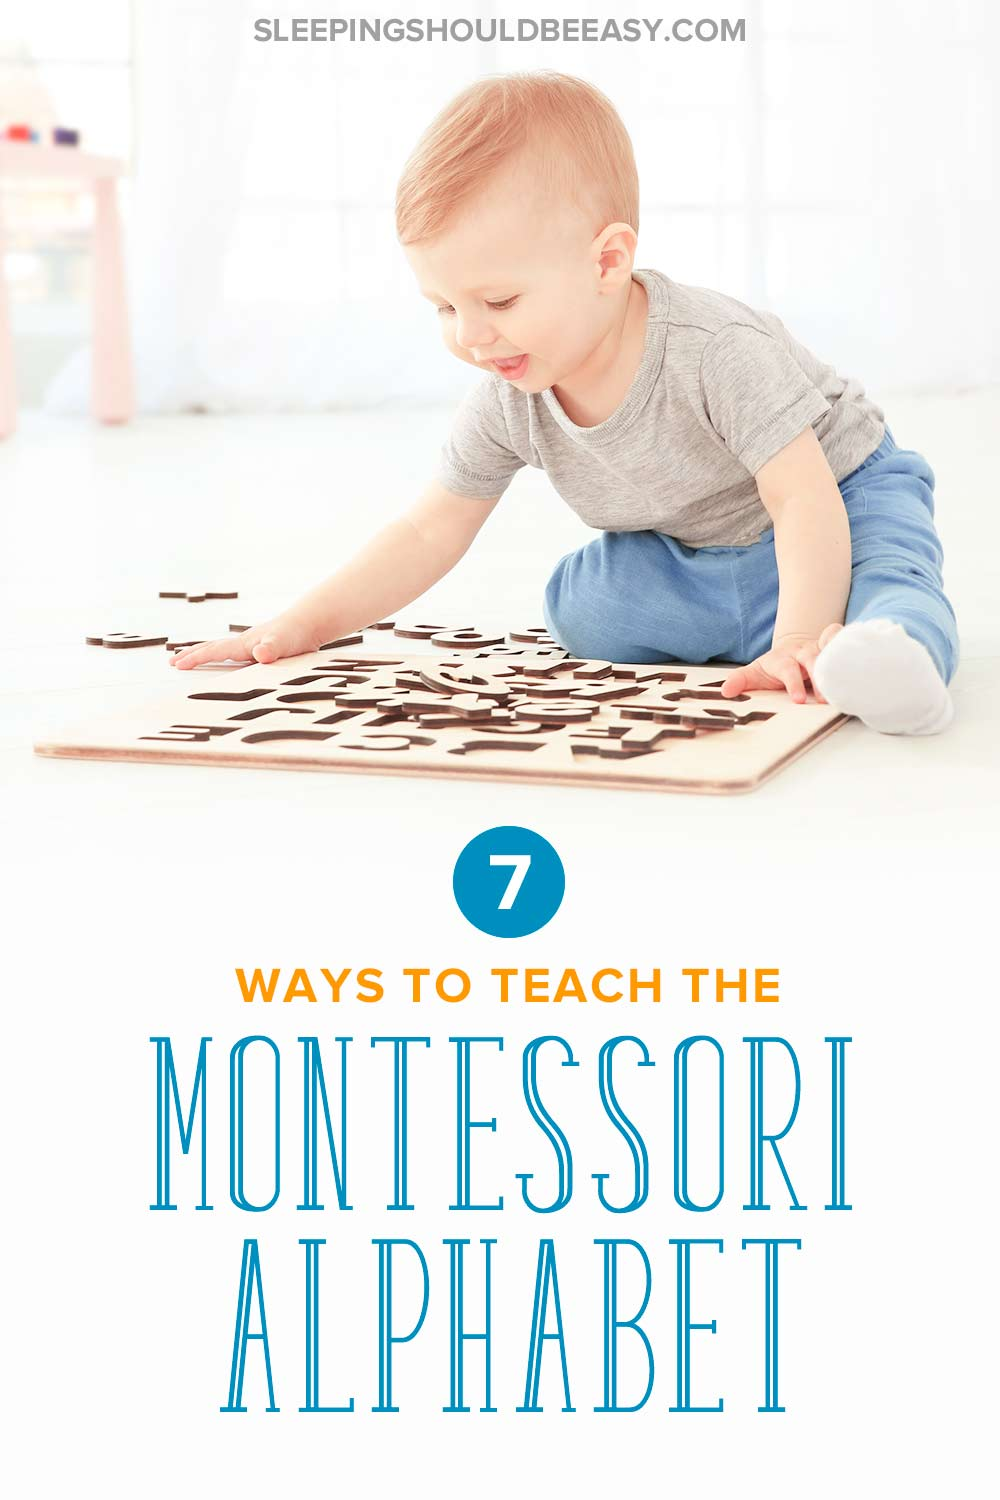 Teaching The Montessori Alphabet Sleeping Should Be Easy